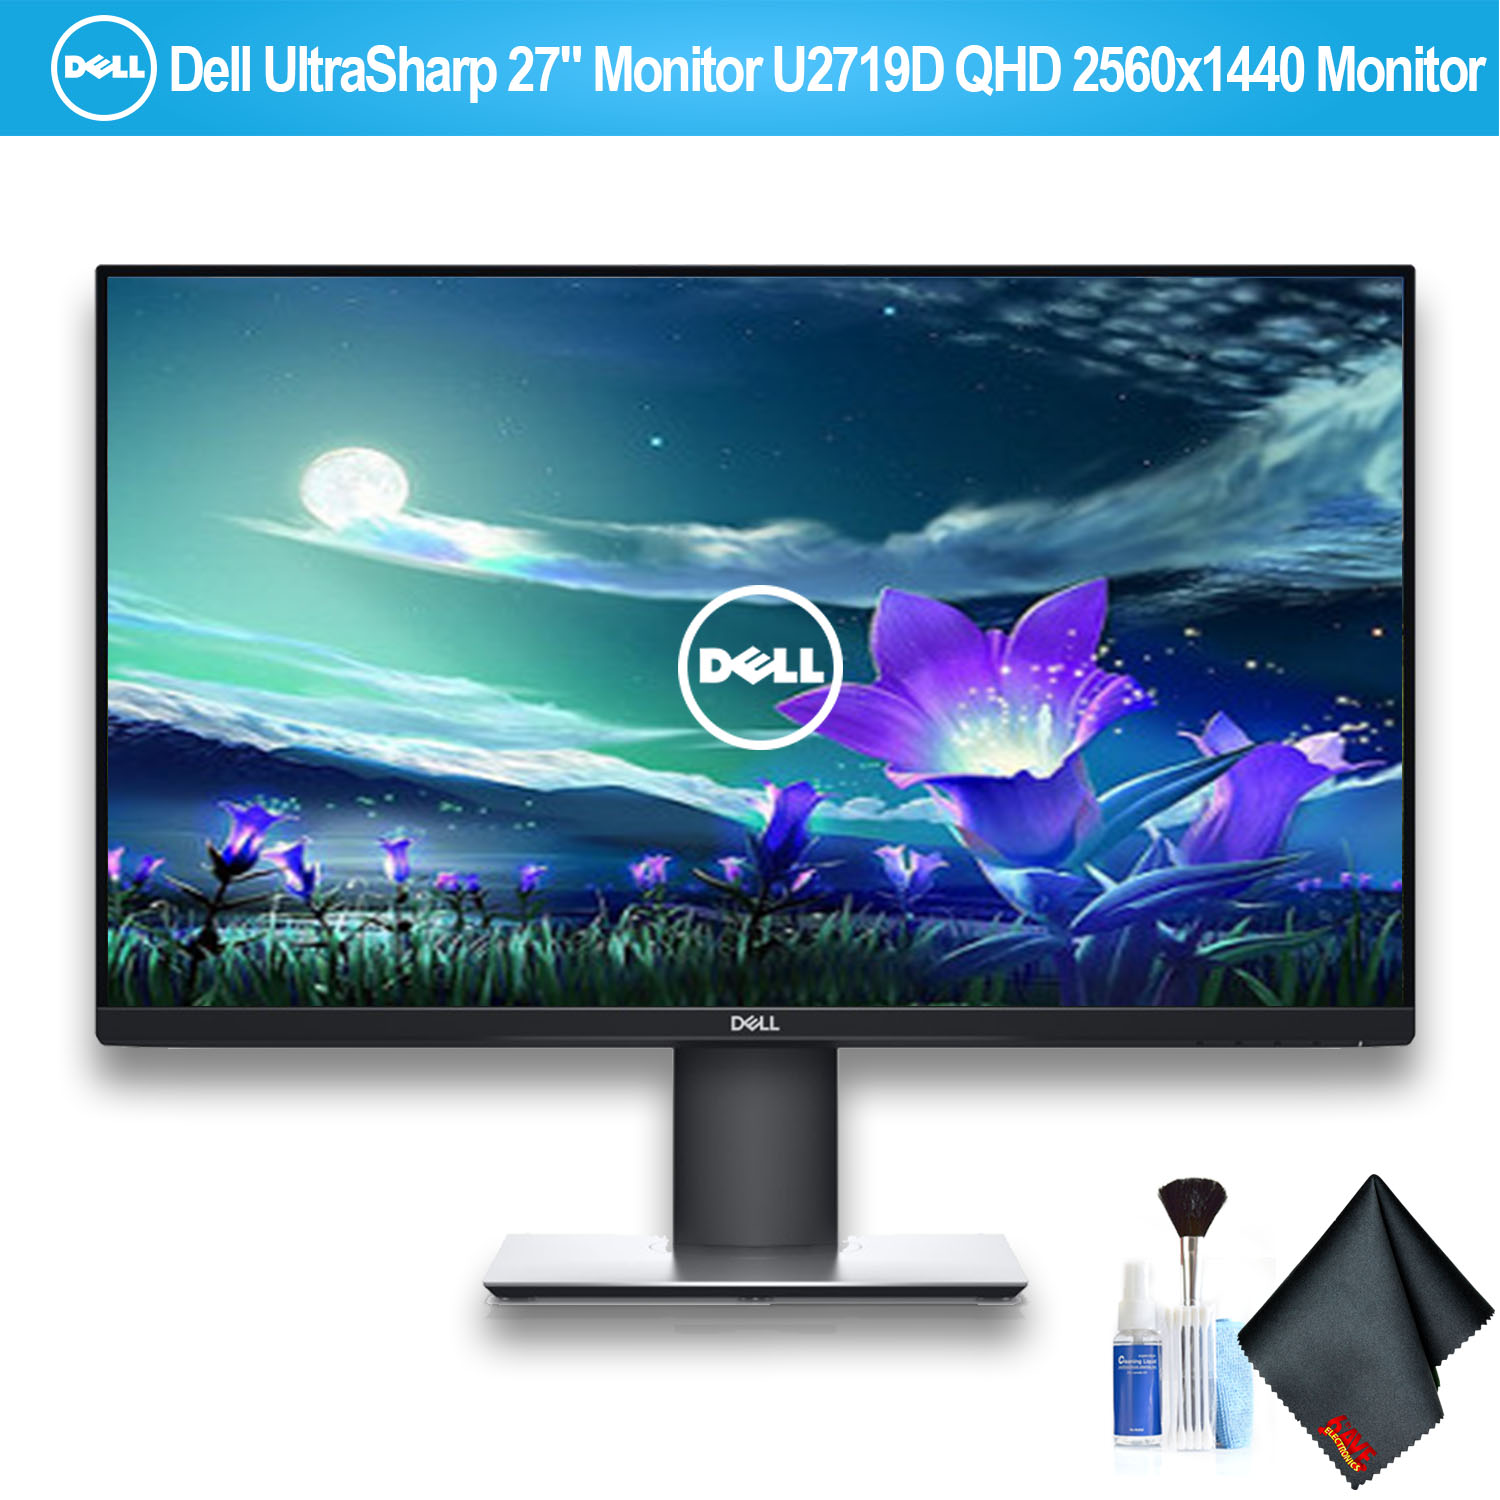 """Dell UltraSharp 27"""" Monitor QHD 2560x1440 Monitor With HDMI Cable and Ergotron 45-295-026 LX Desk Mount LCD Arm Extra Height"""